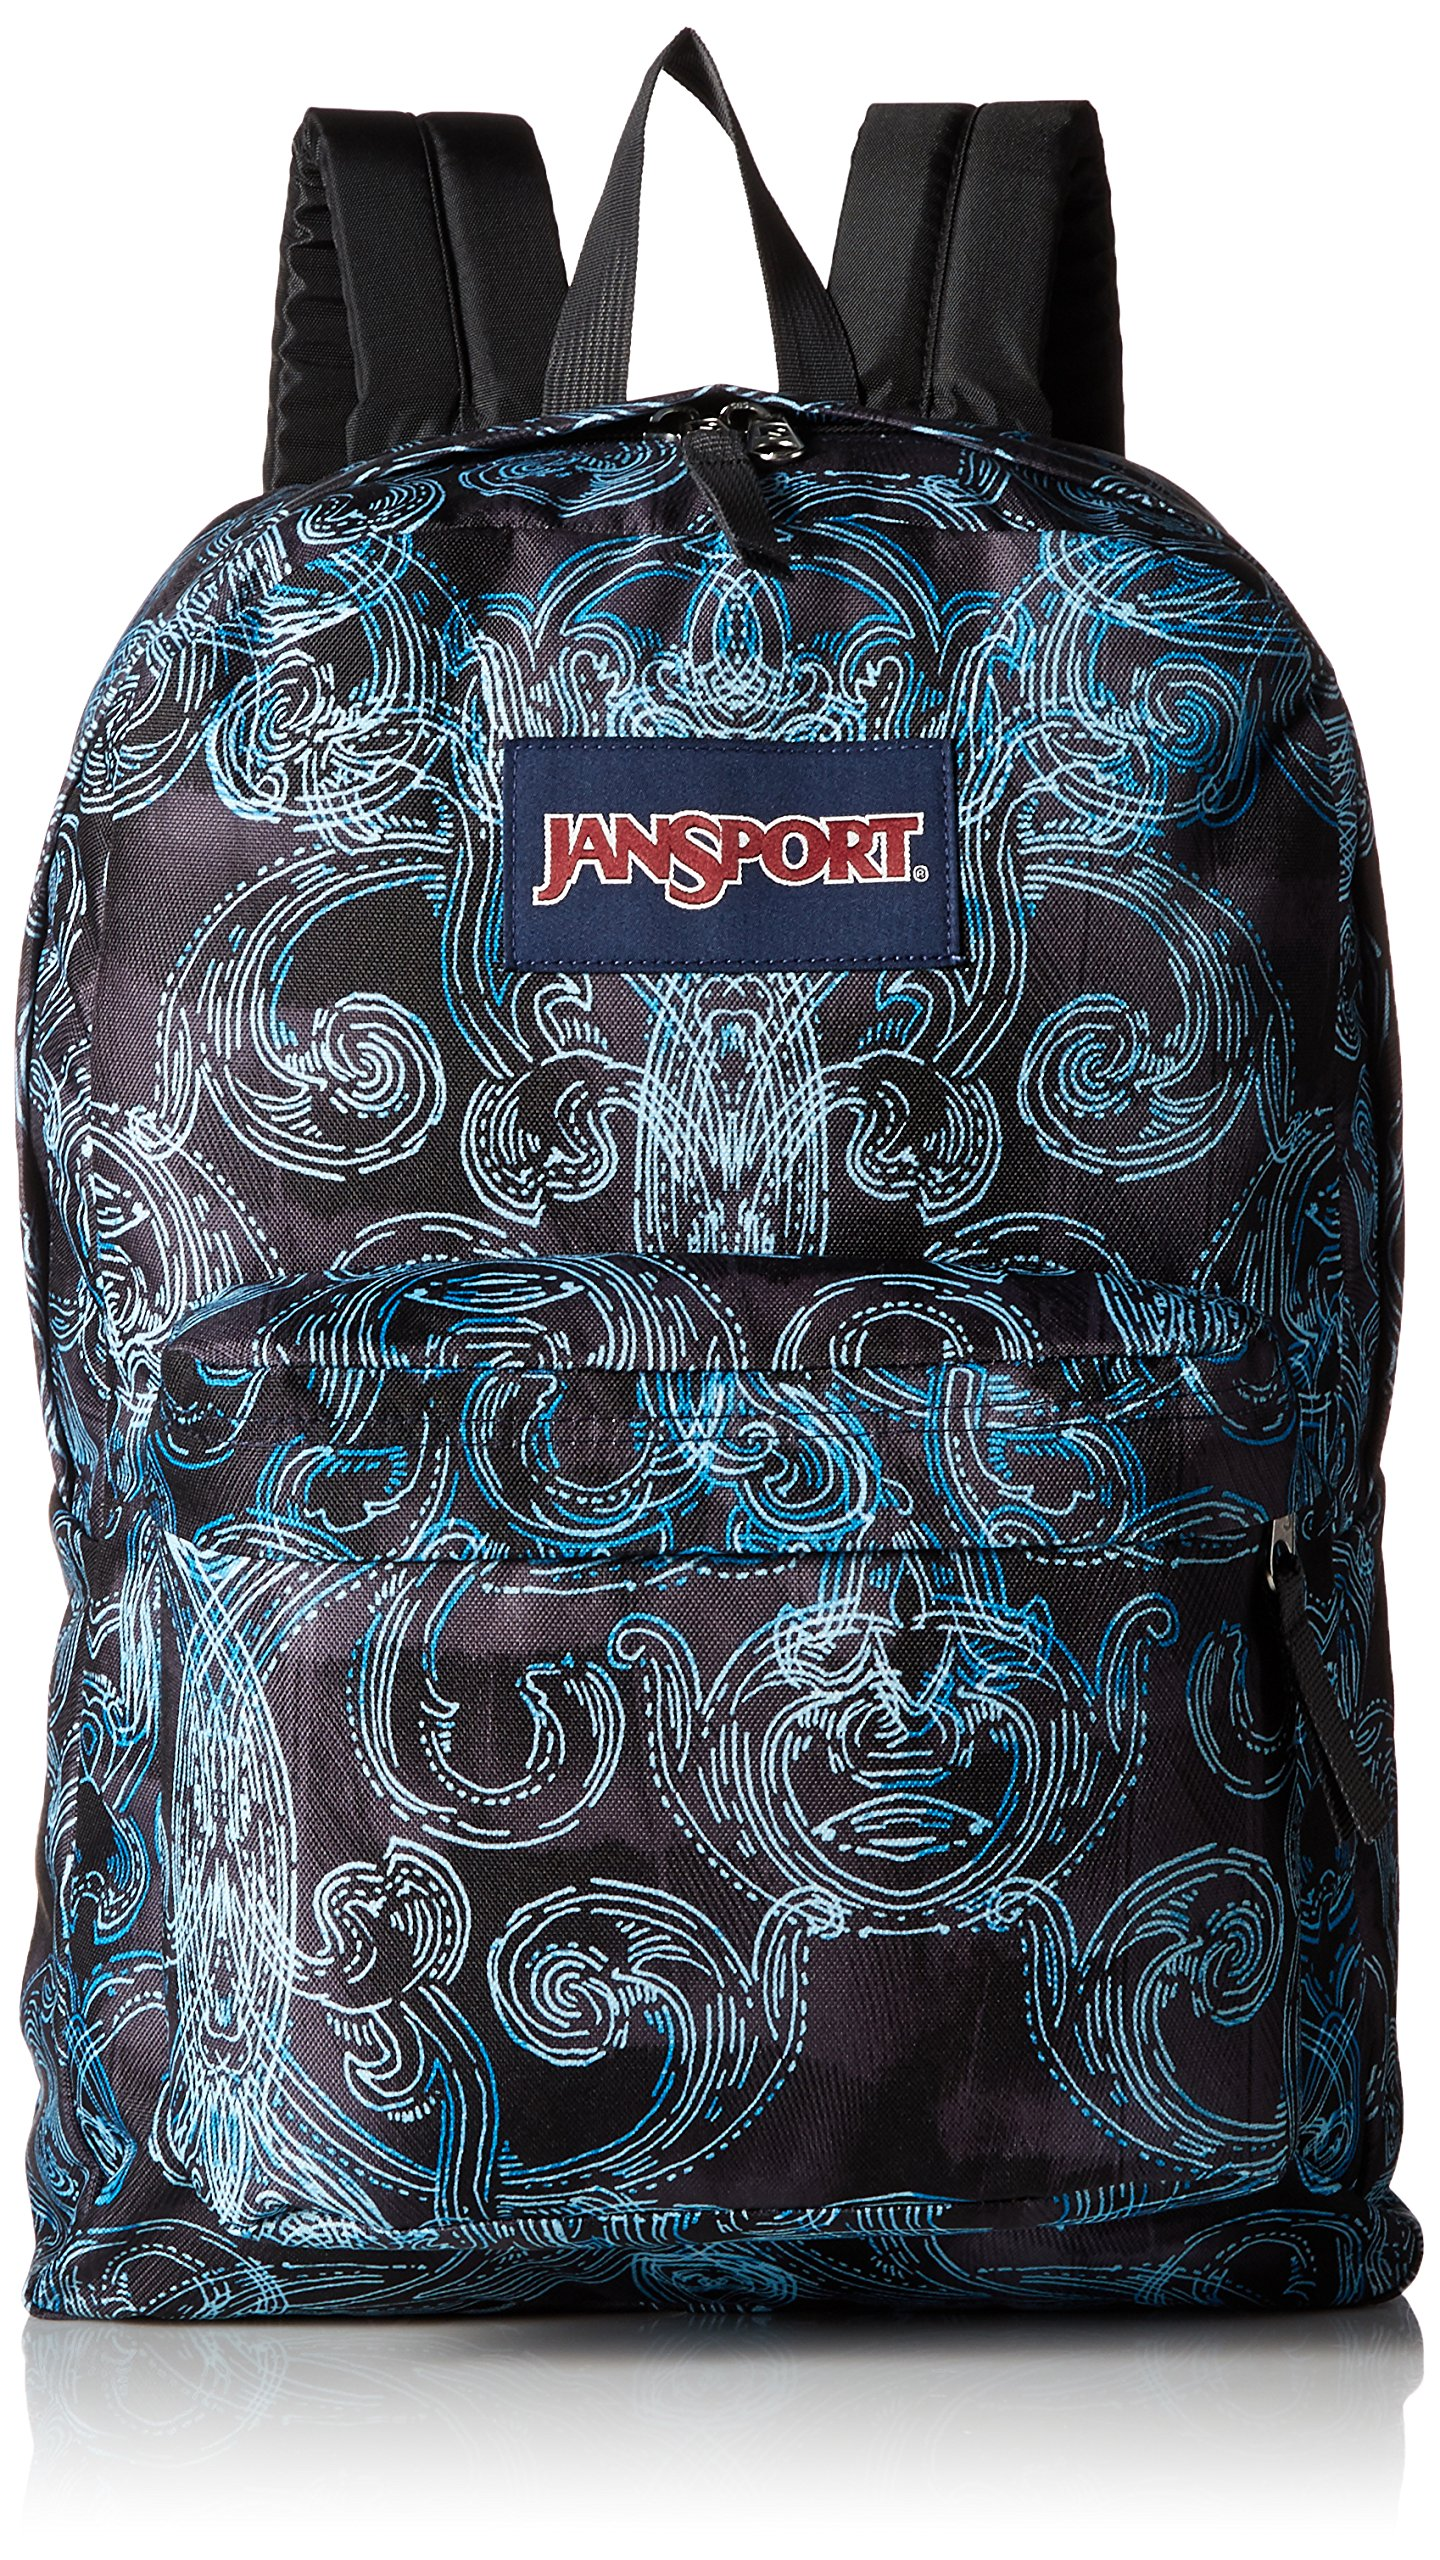 JanSport Unisex SuperBreak Multi Ornate Blues Backpack